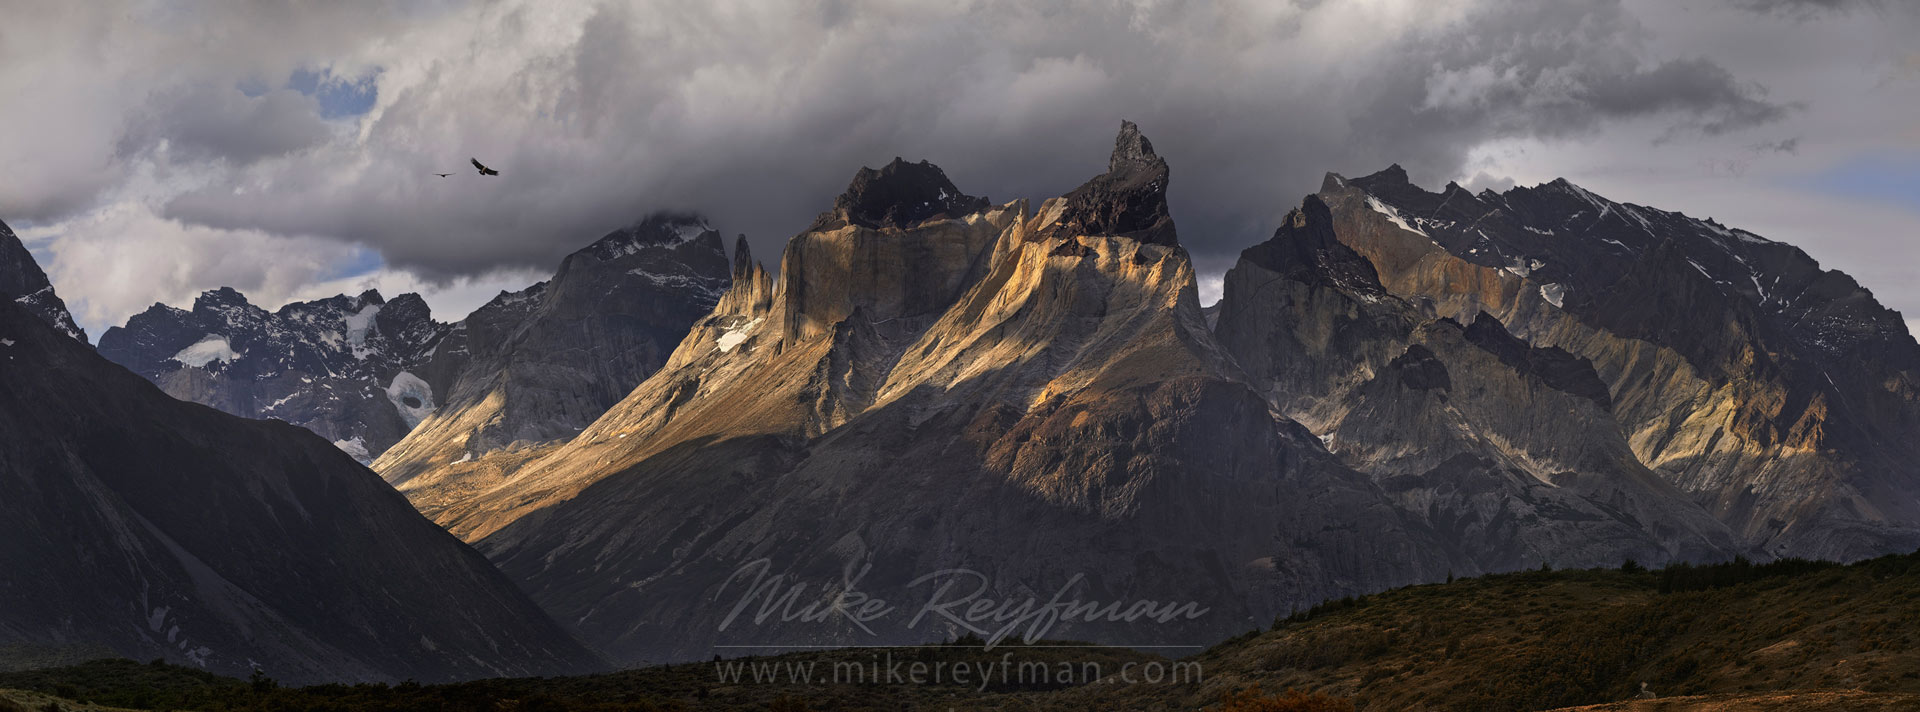 El Condor Pasa. Panoramic view of Cordillera del Paine with flying condors. Torres del Paine National Park, Ultima Esperanza Province, Magallanes and Antartica Chilena Region XII, Patagonia, Chile. - Torres-Del-Paine-National-Park-Patagonia-Chile - Mike Reyfman Photography